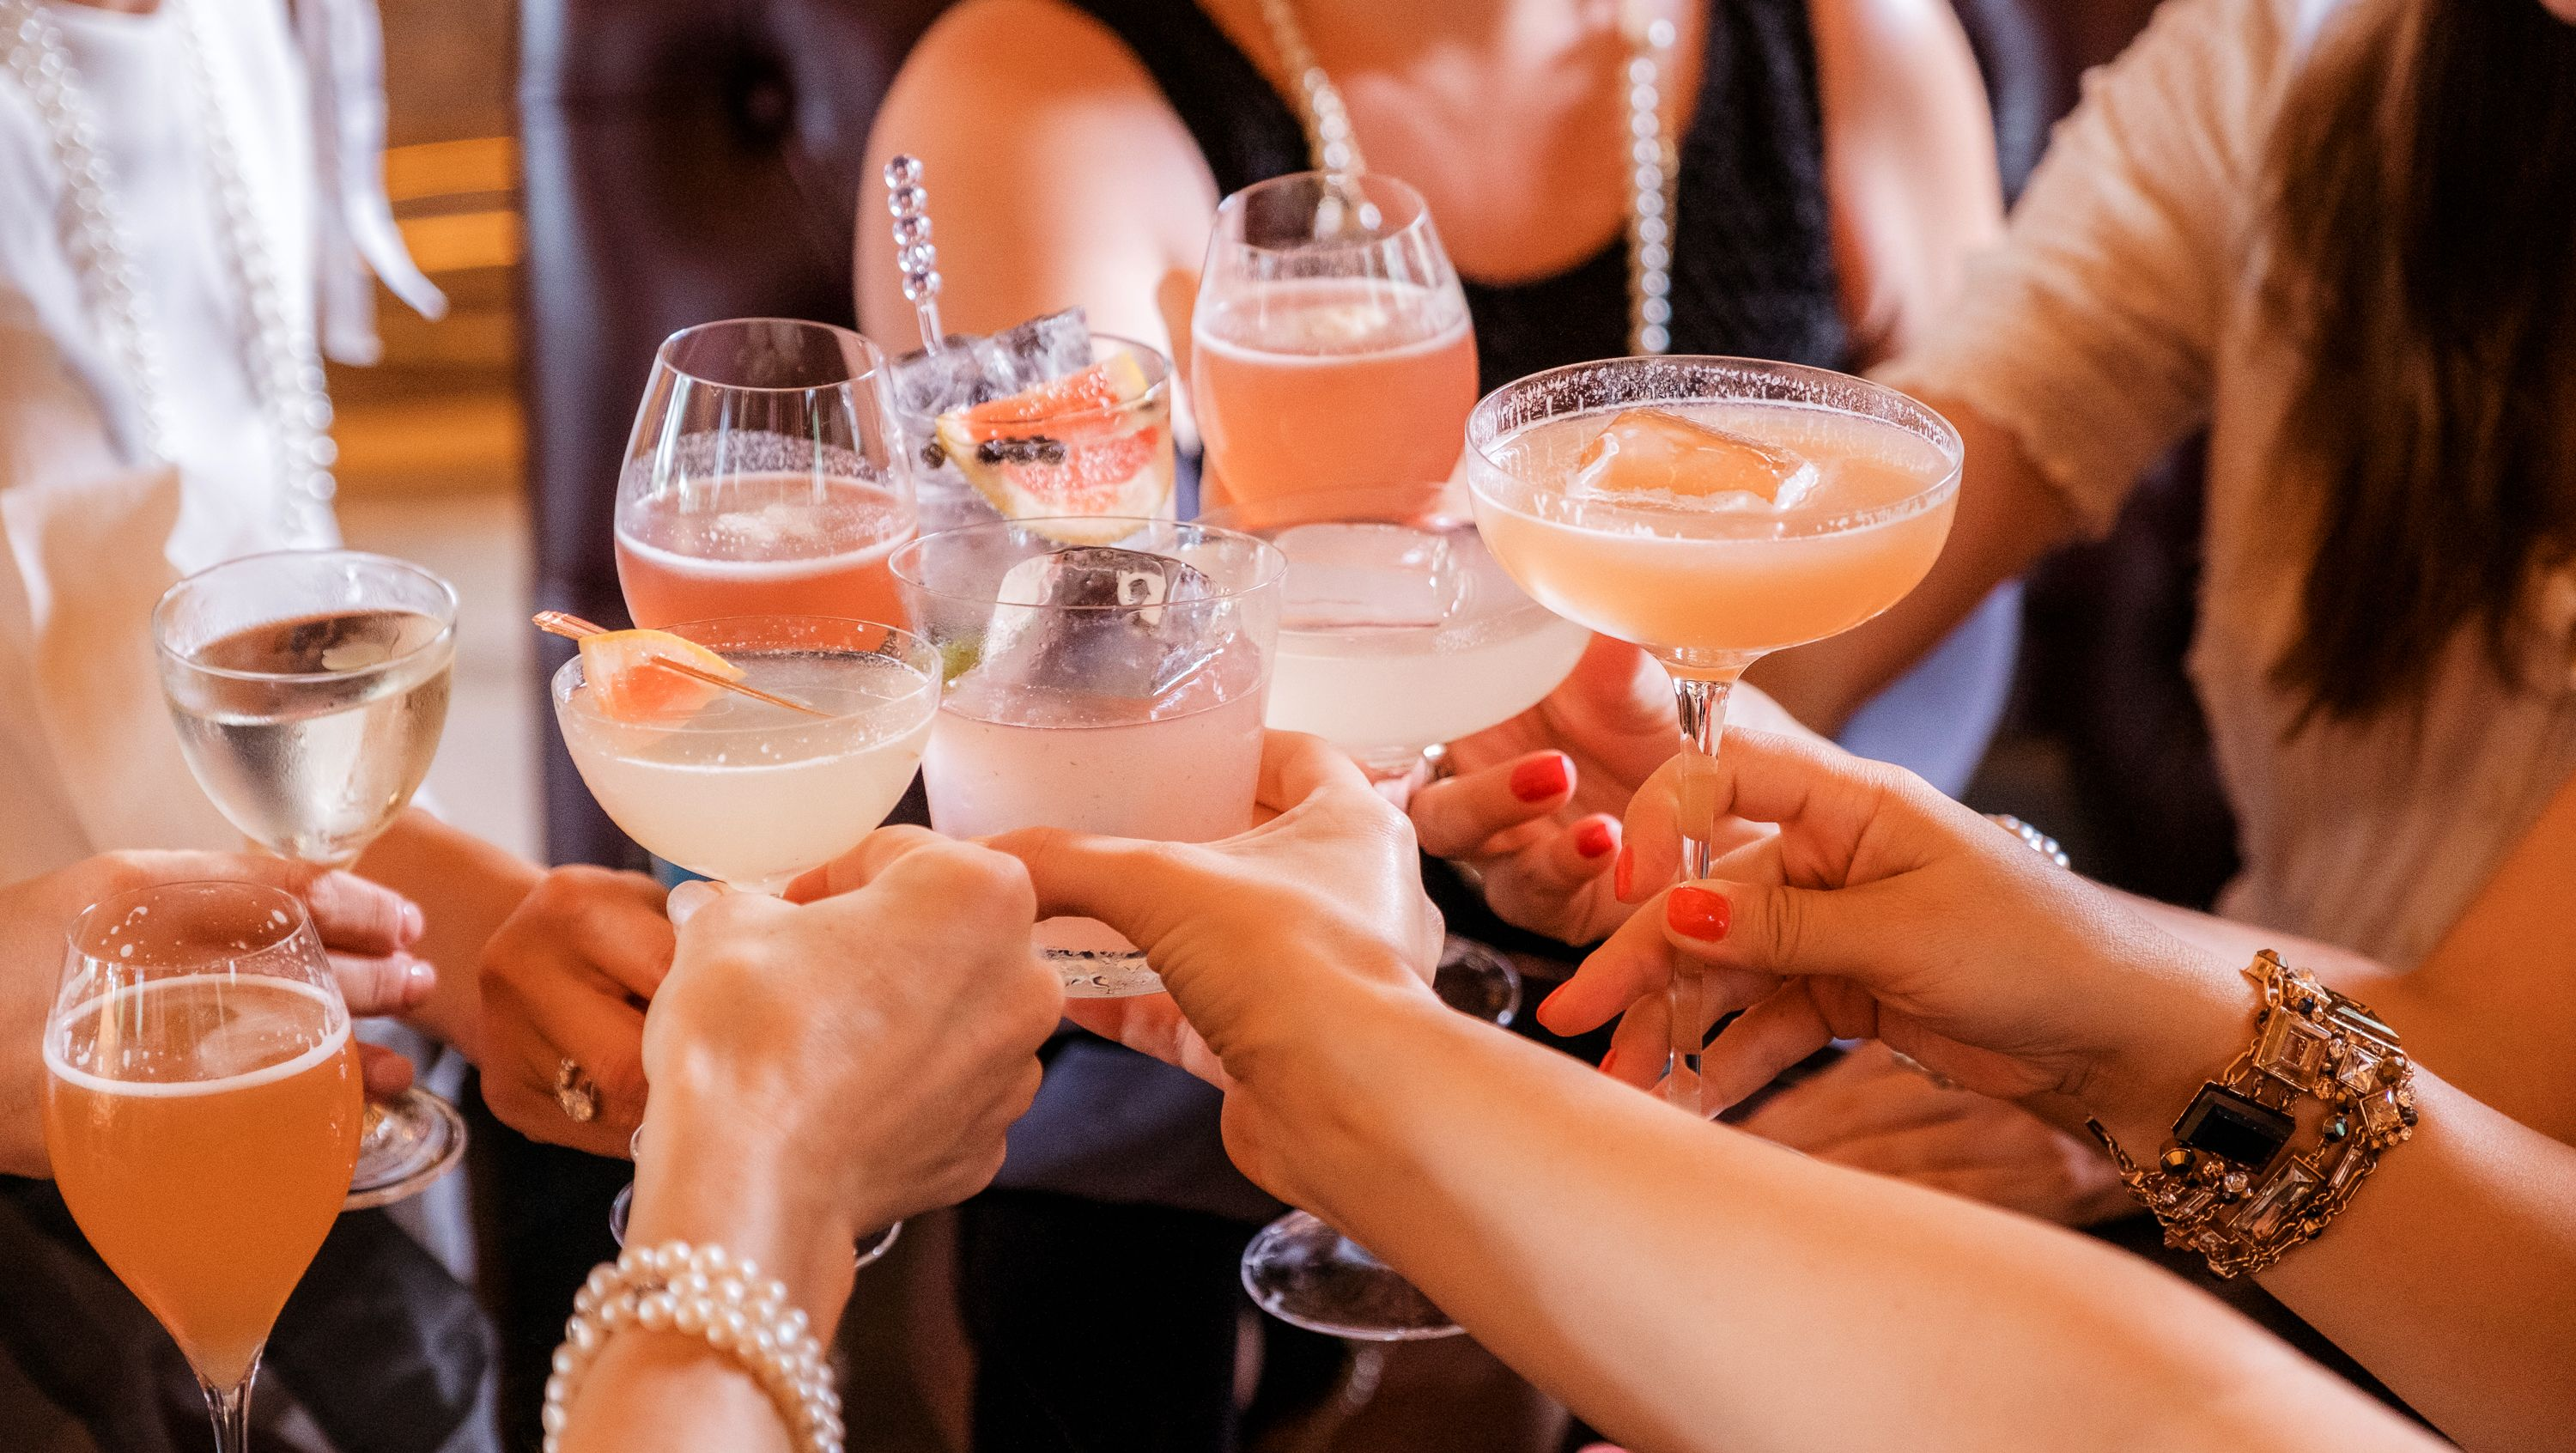 Say cheers to the fun, minus the booze buzz